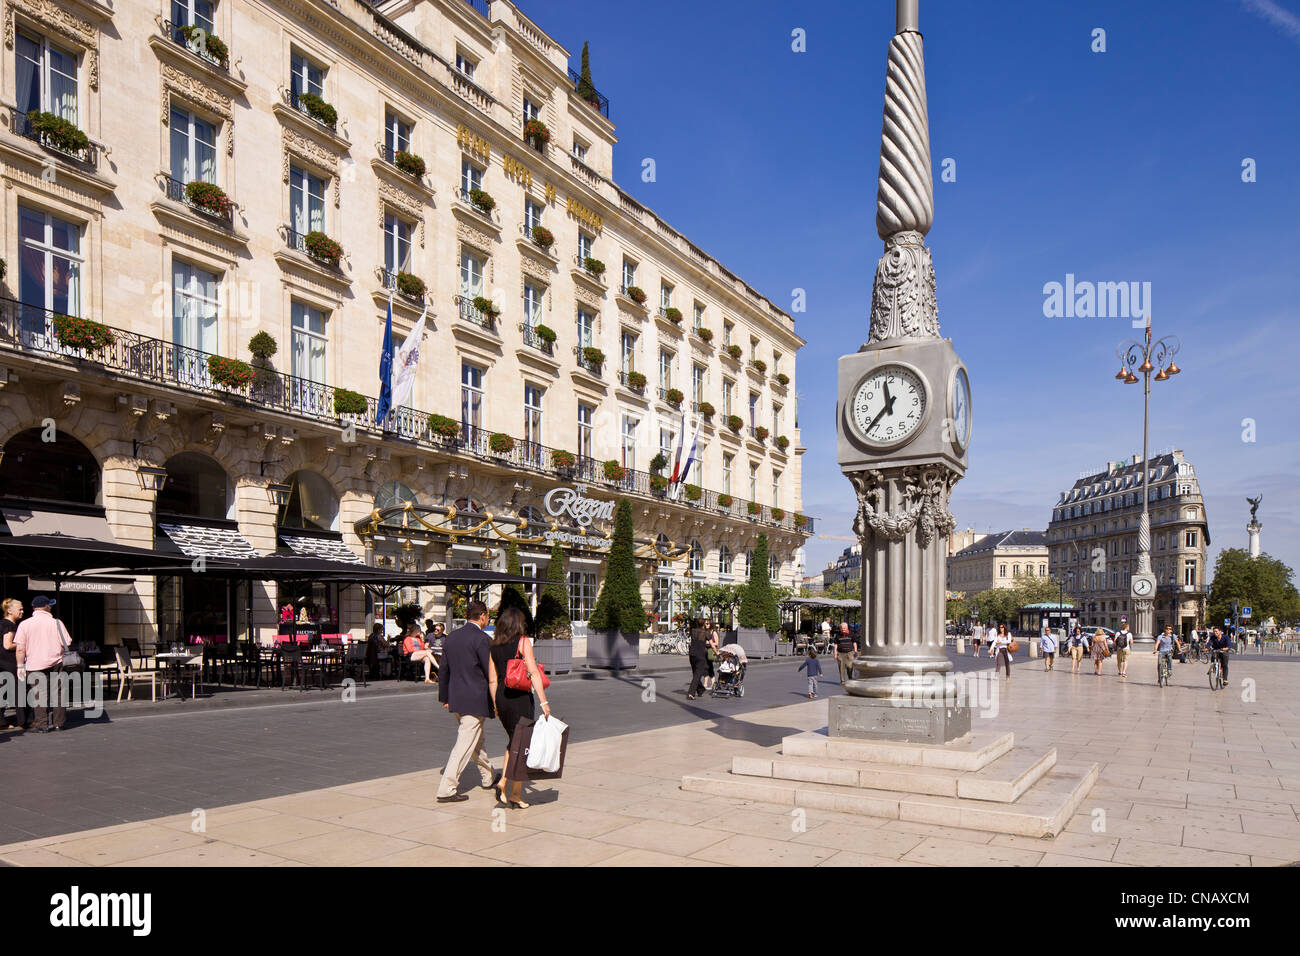 France, Gironde, Bordeaux, area listed as World Heritage by UNESCO, The Grand Hotel - Stock Image